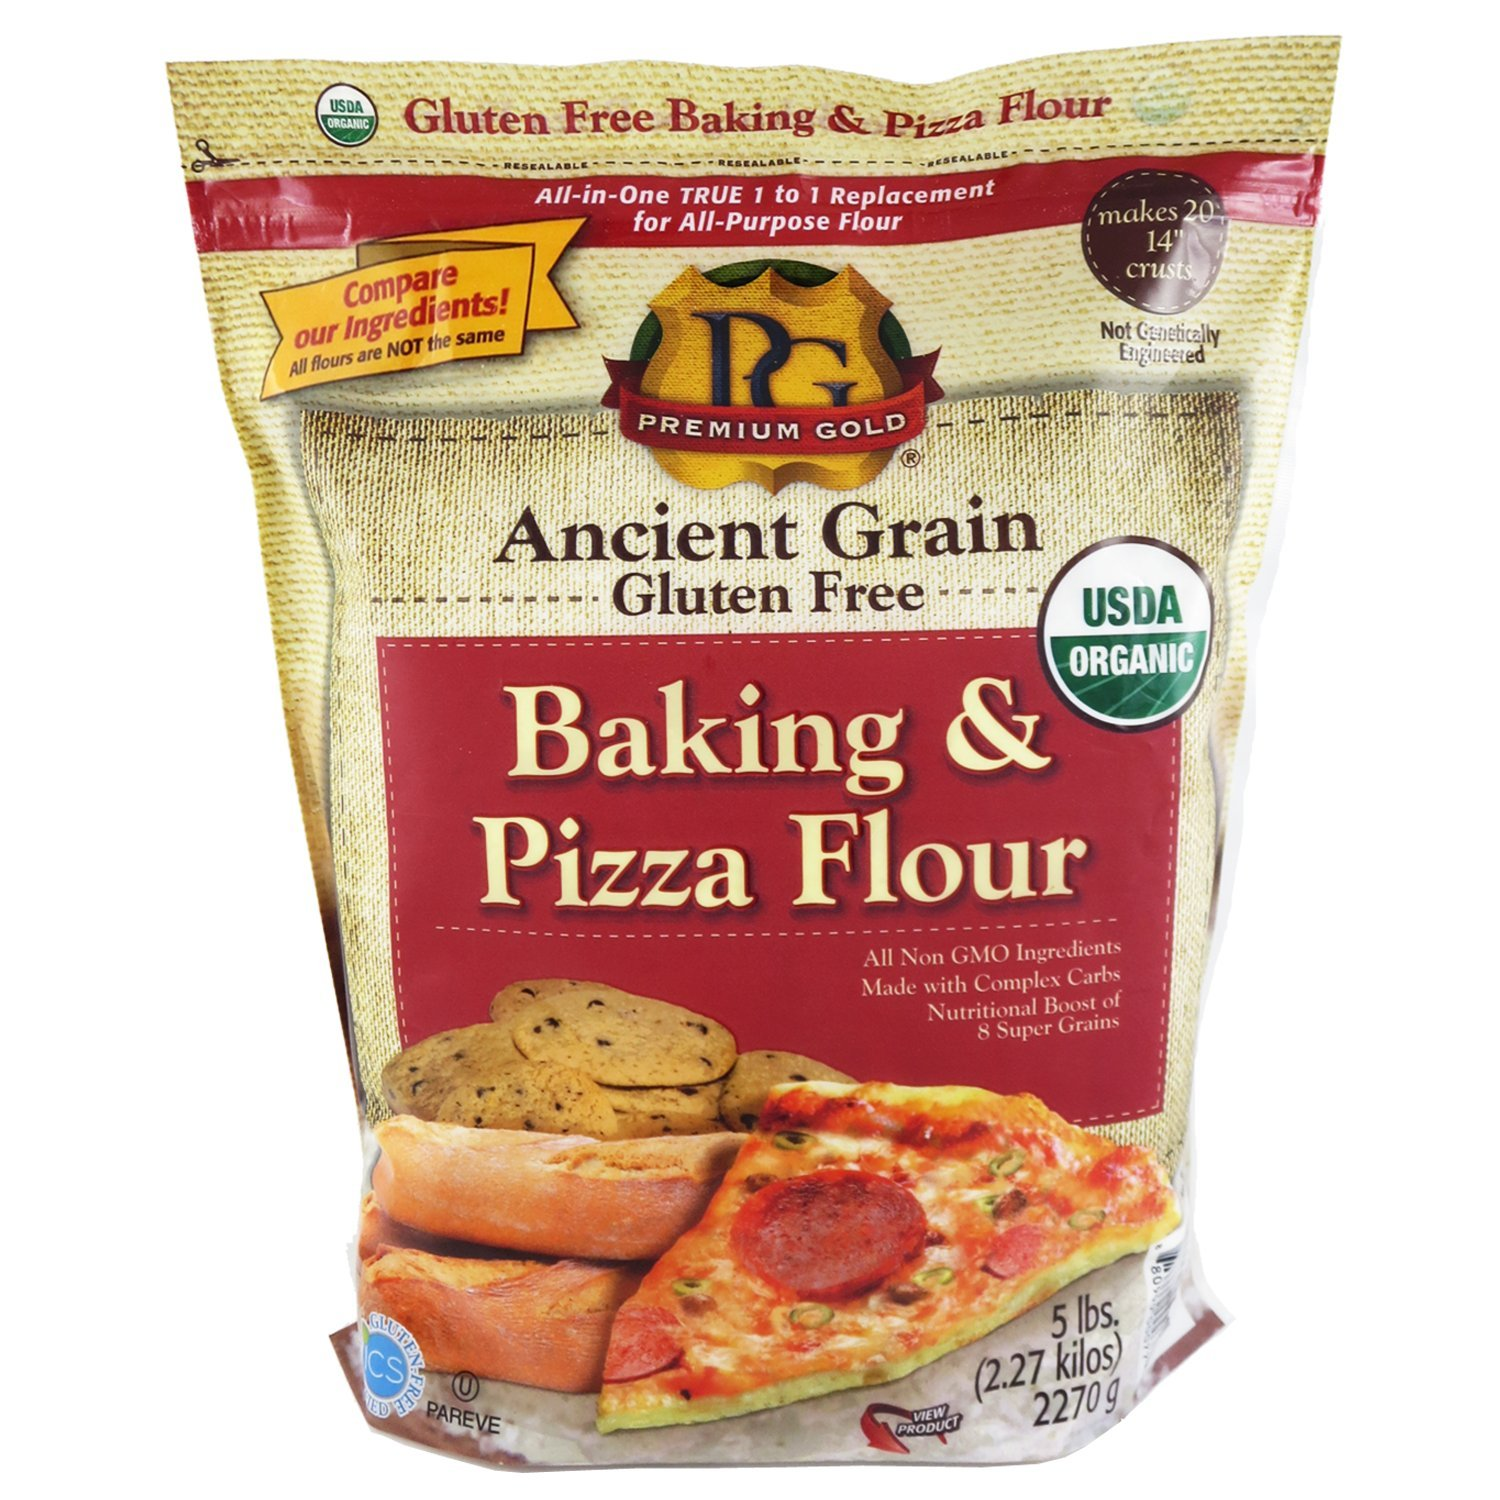 Premium Gold Baking & Pizza Flour, 5 Pound